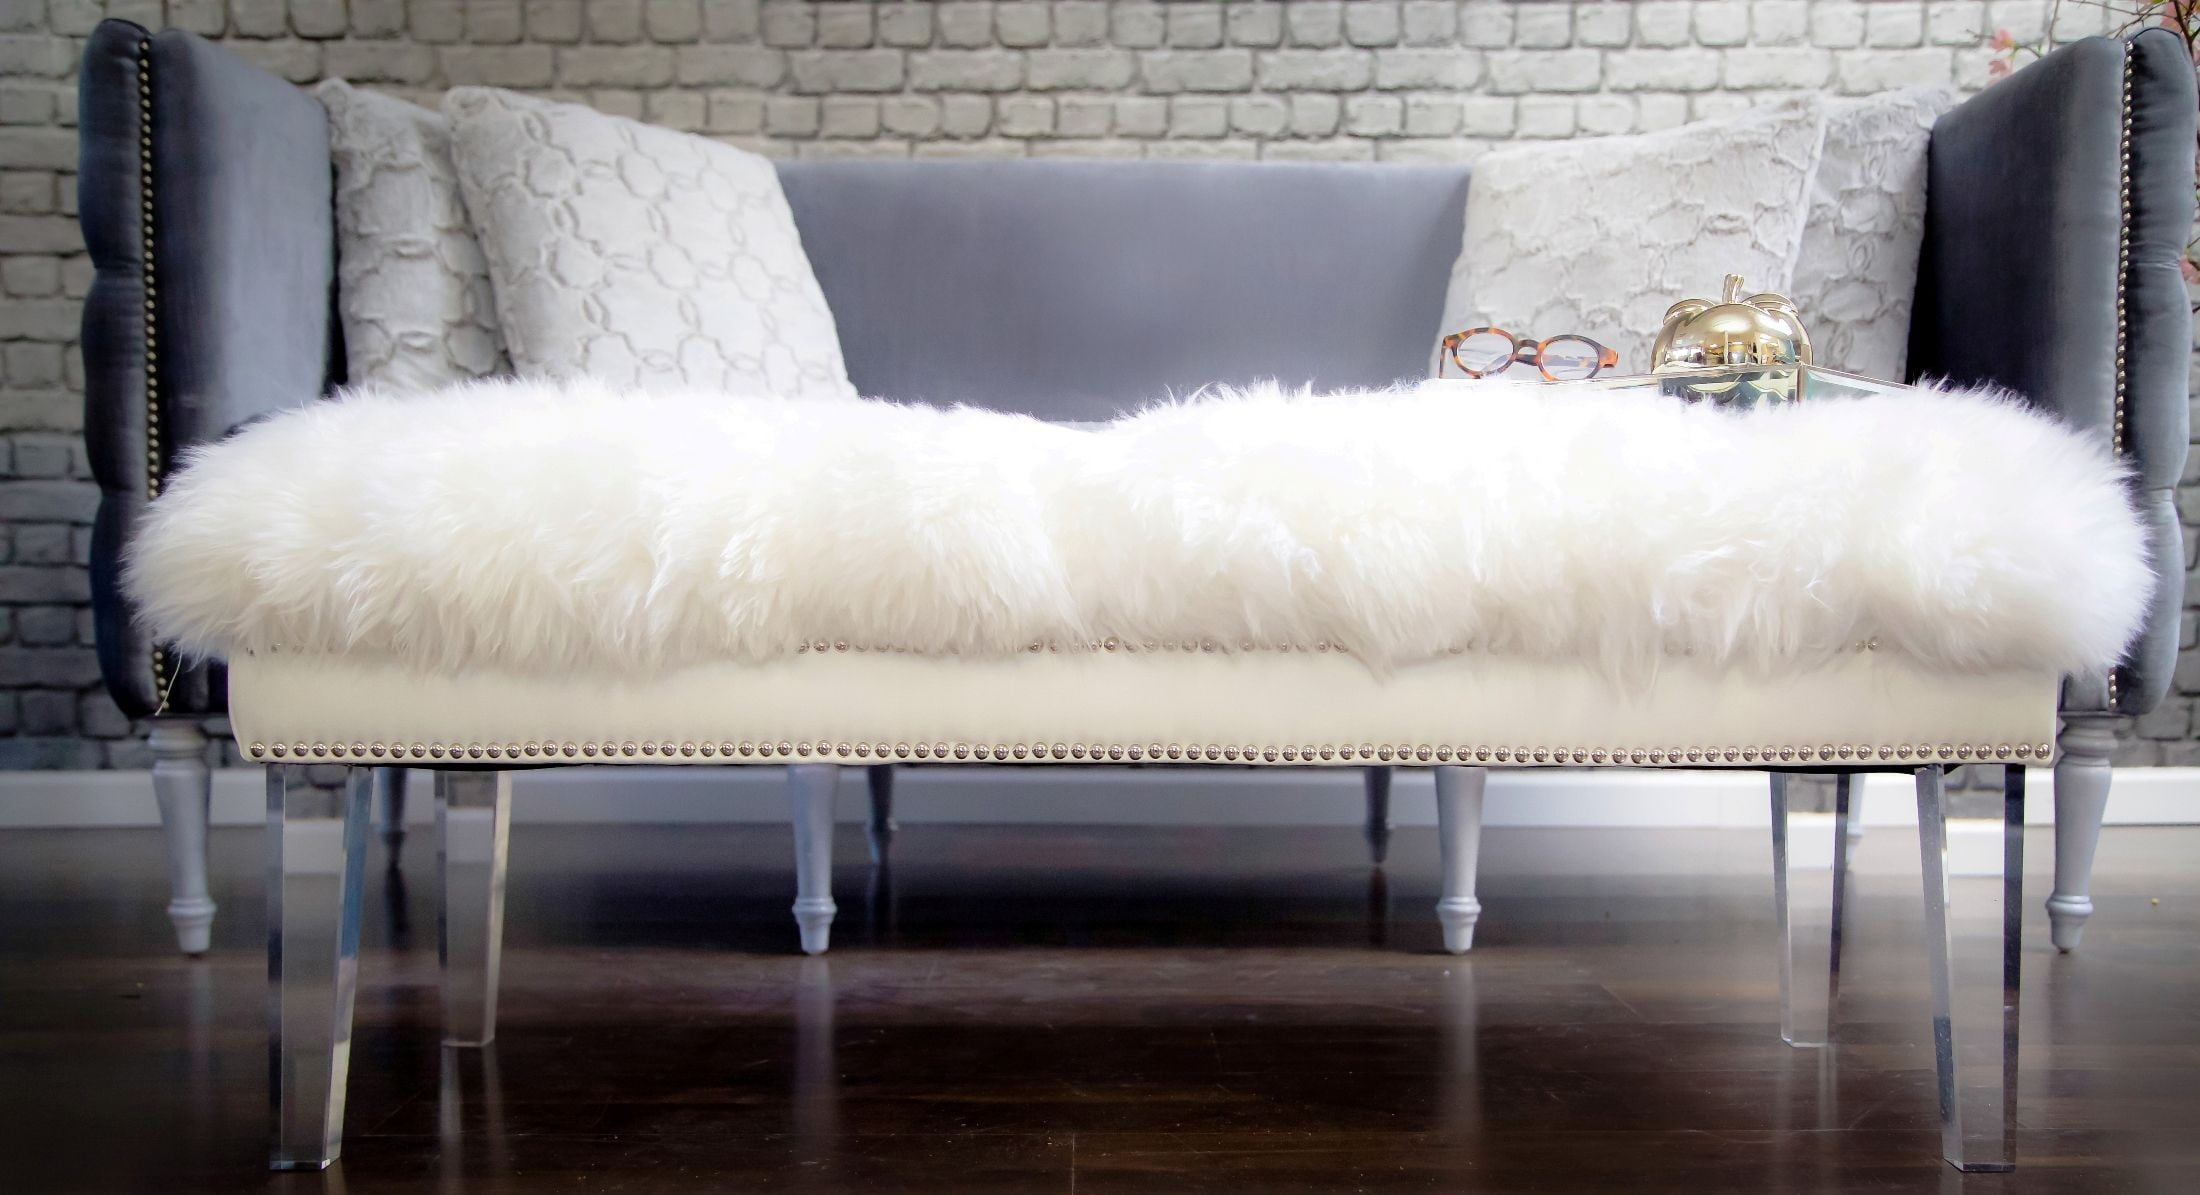 Luxe White Sheepskin Lucite Bench From Tov Tov O22 Coleman Furniture